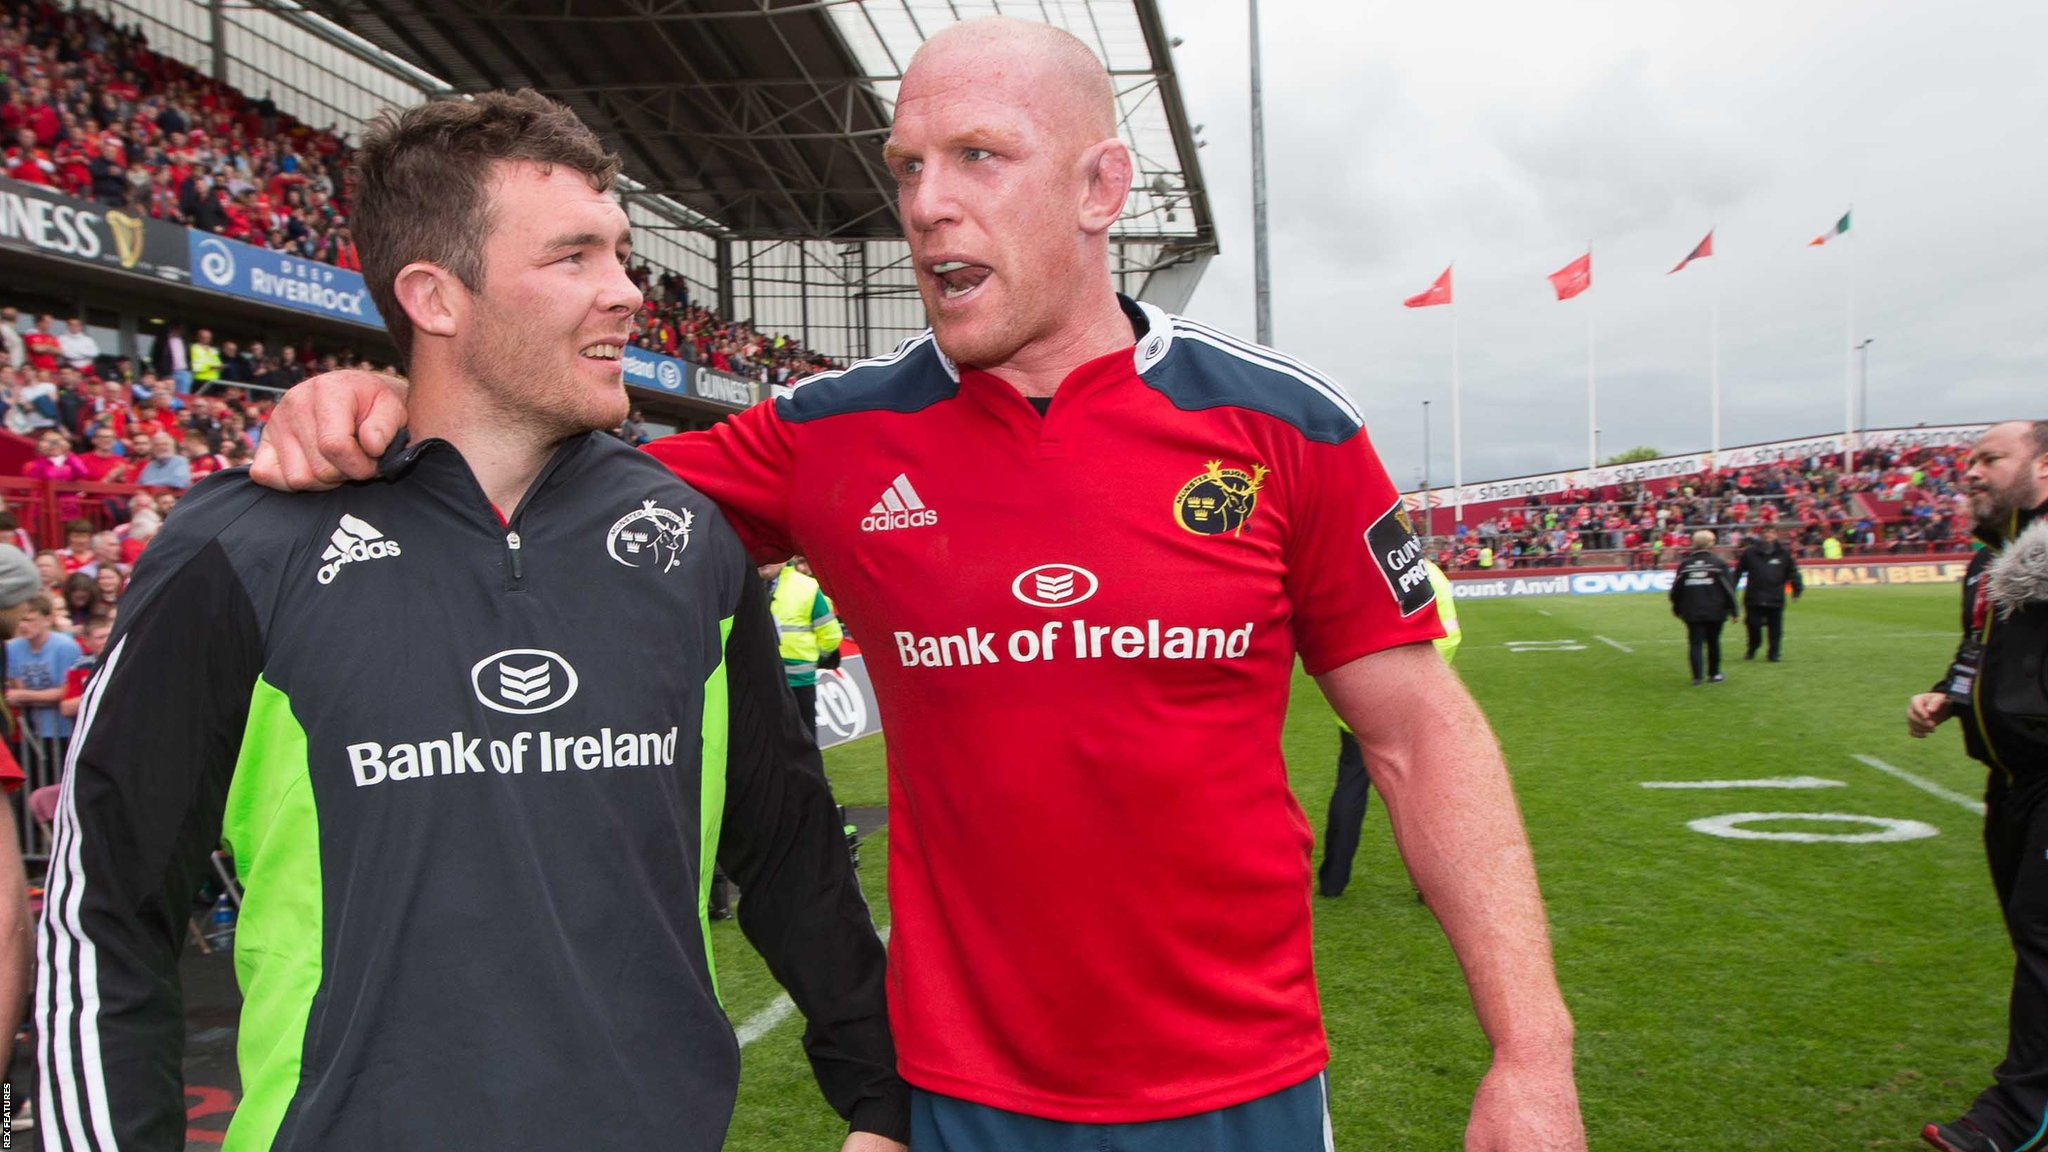 O'Mahony has 'sense of perspective' - O'Connell